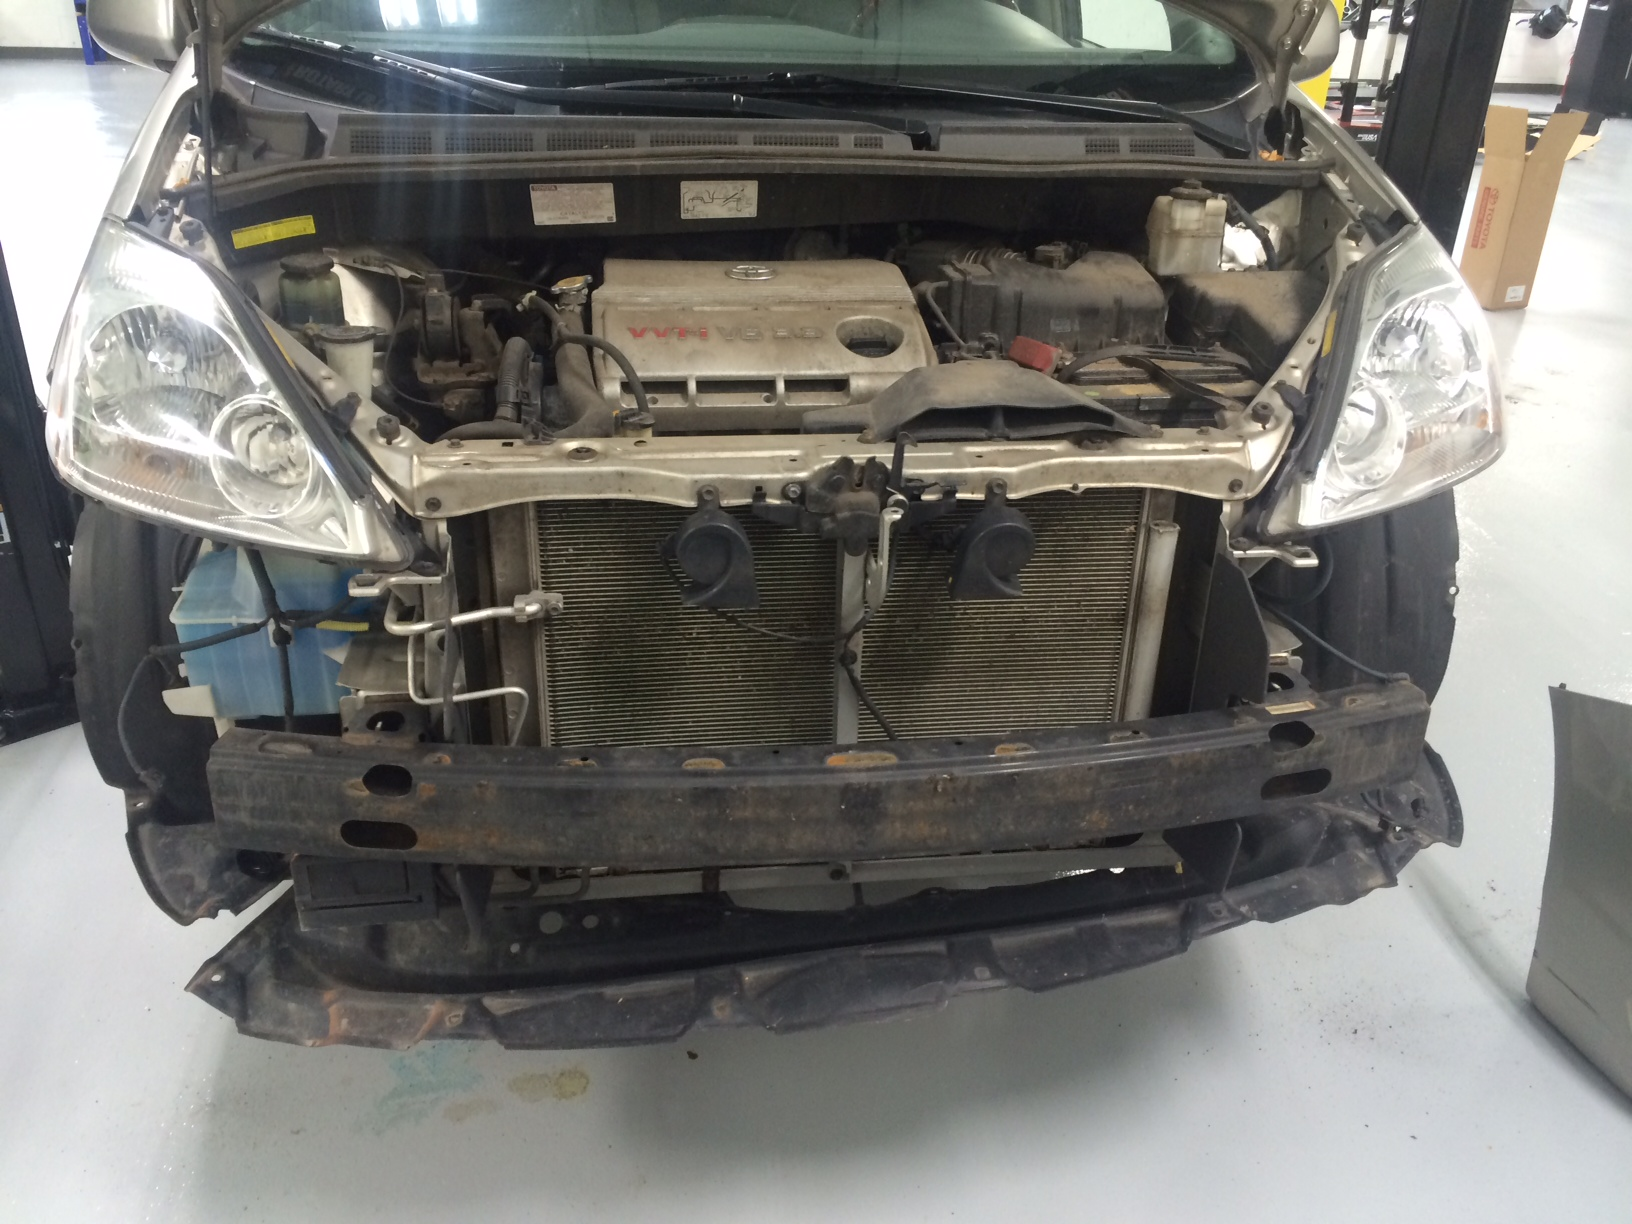 Toyota Sienna Repair Radiator Replacement